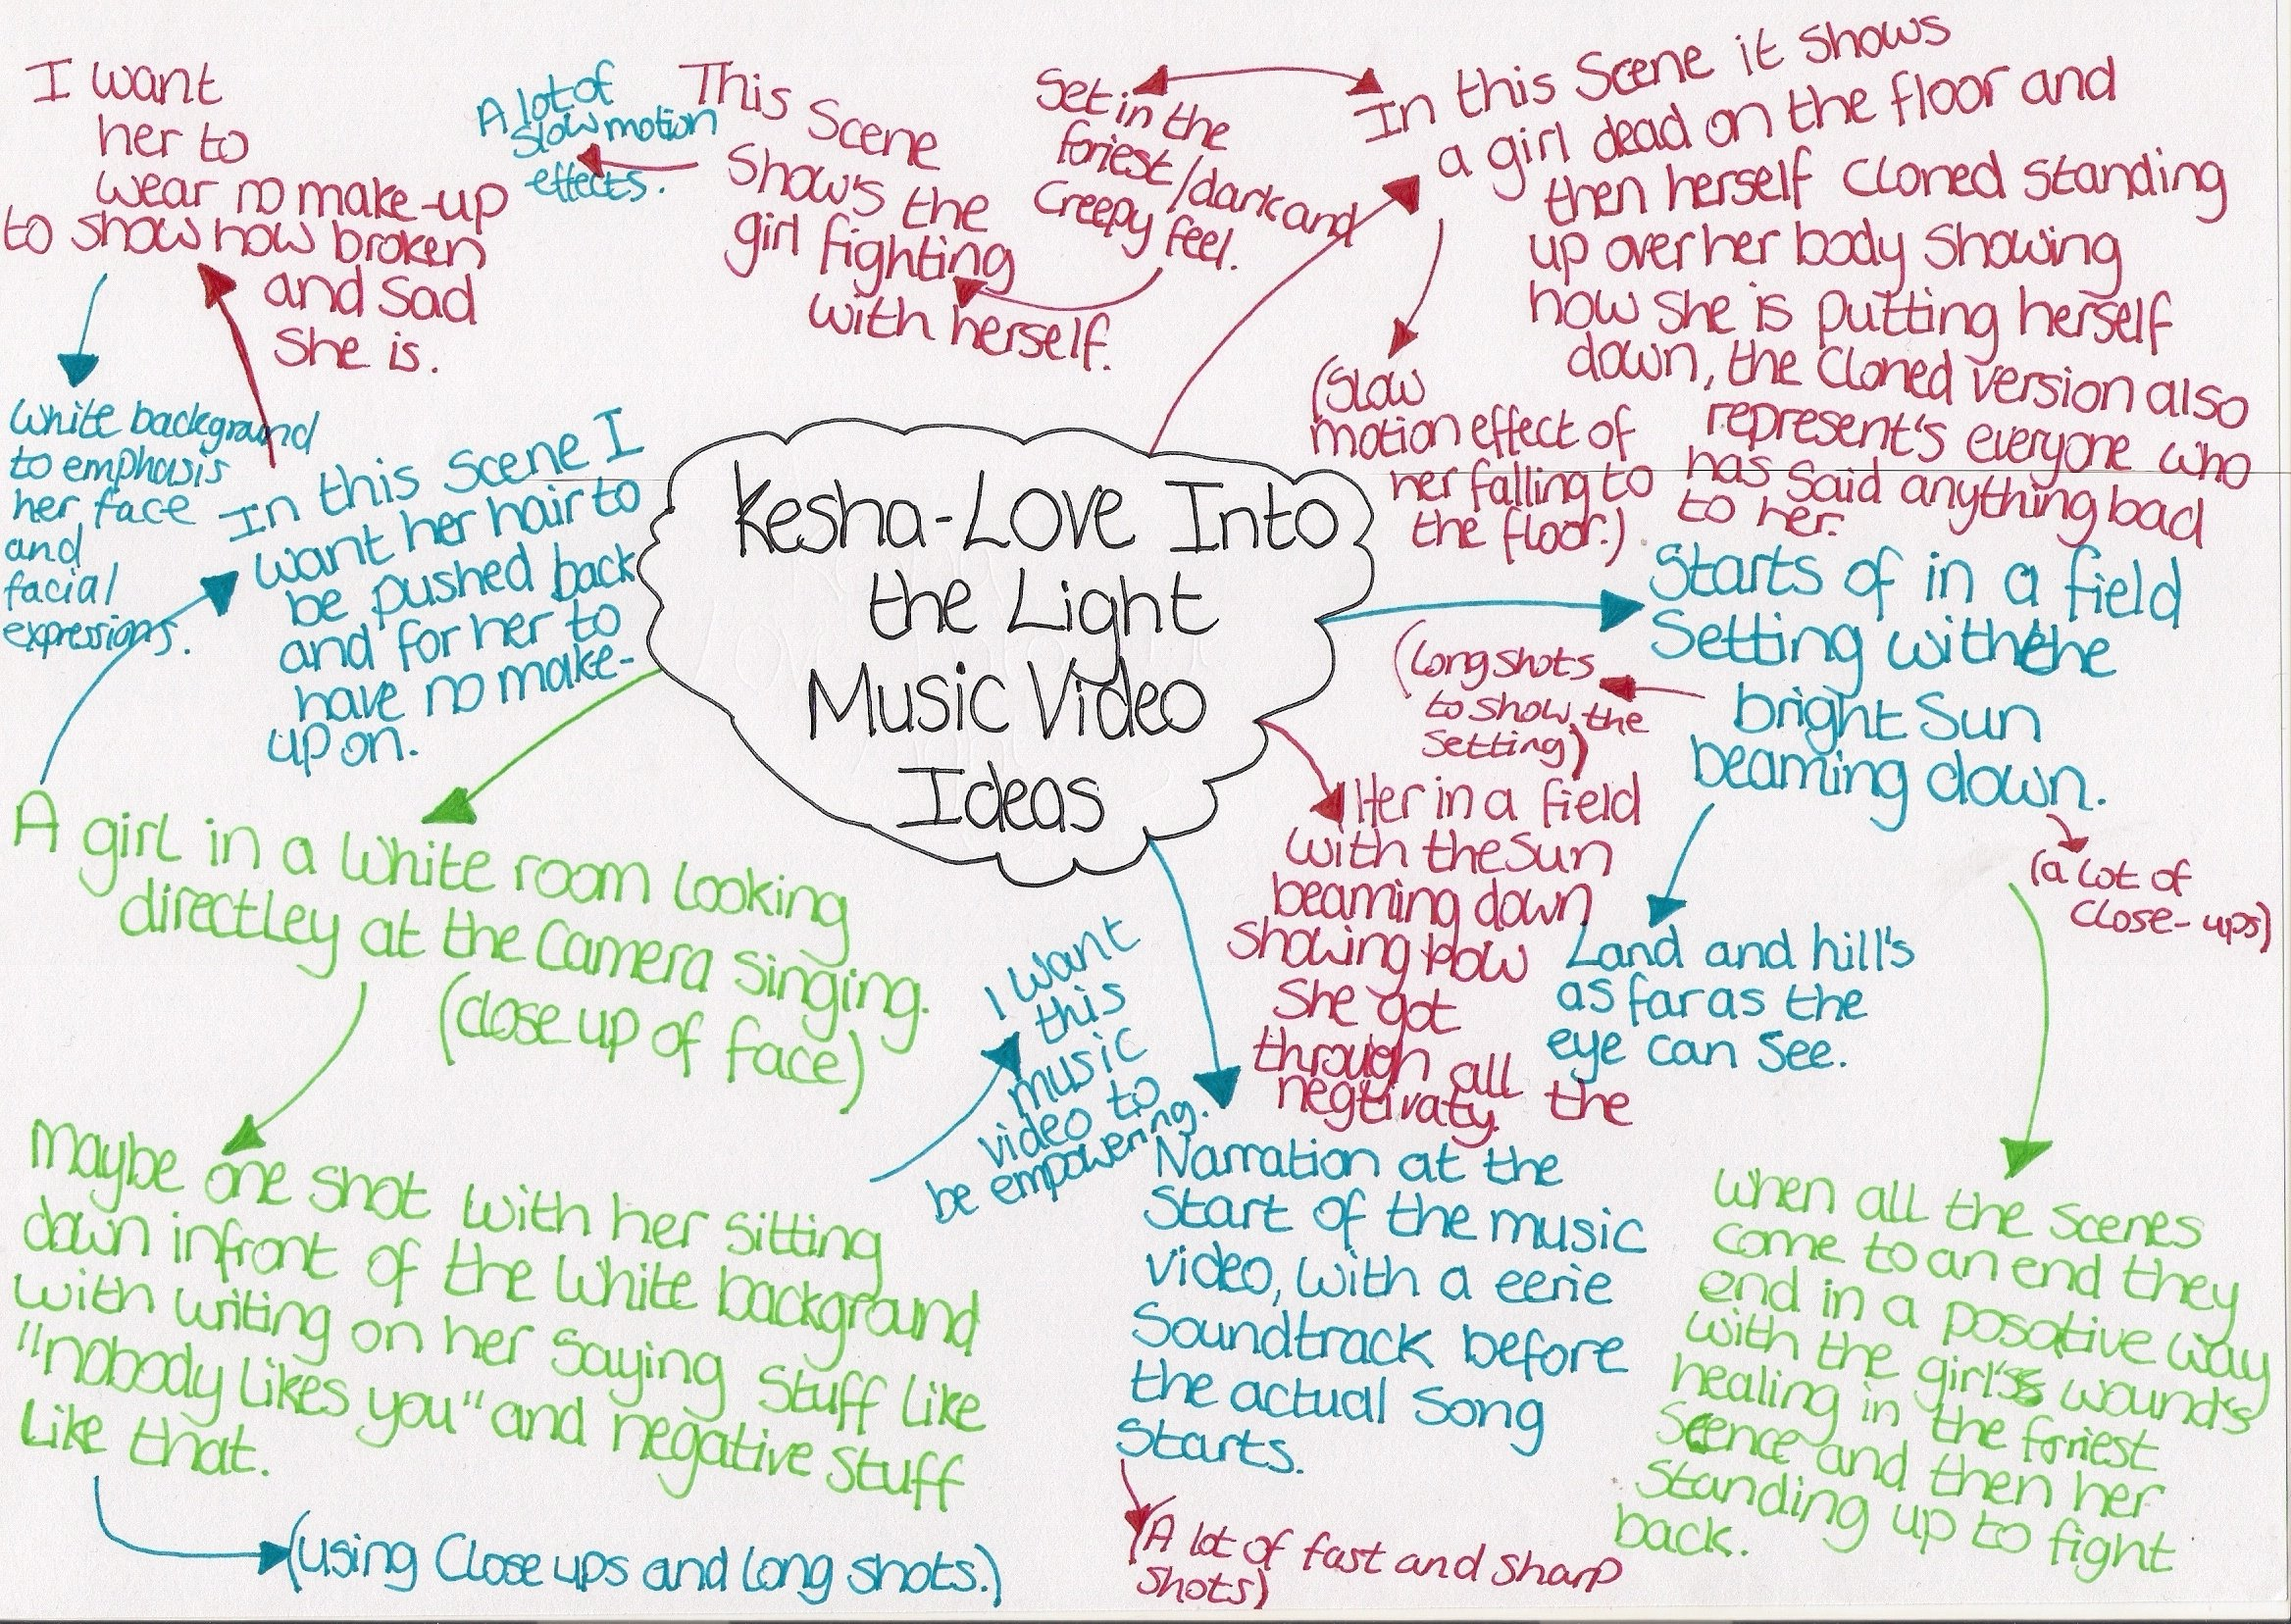 10 Great Ideas For A Music Video kesha love in to the light music video ideas mind map jack 2020